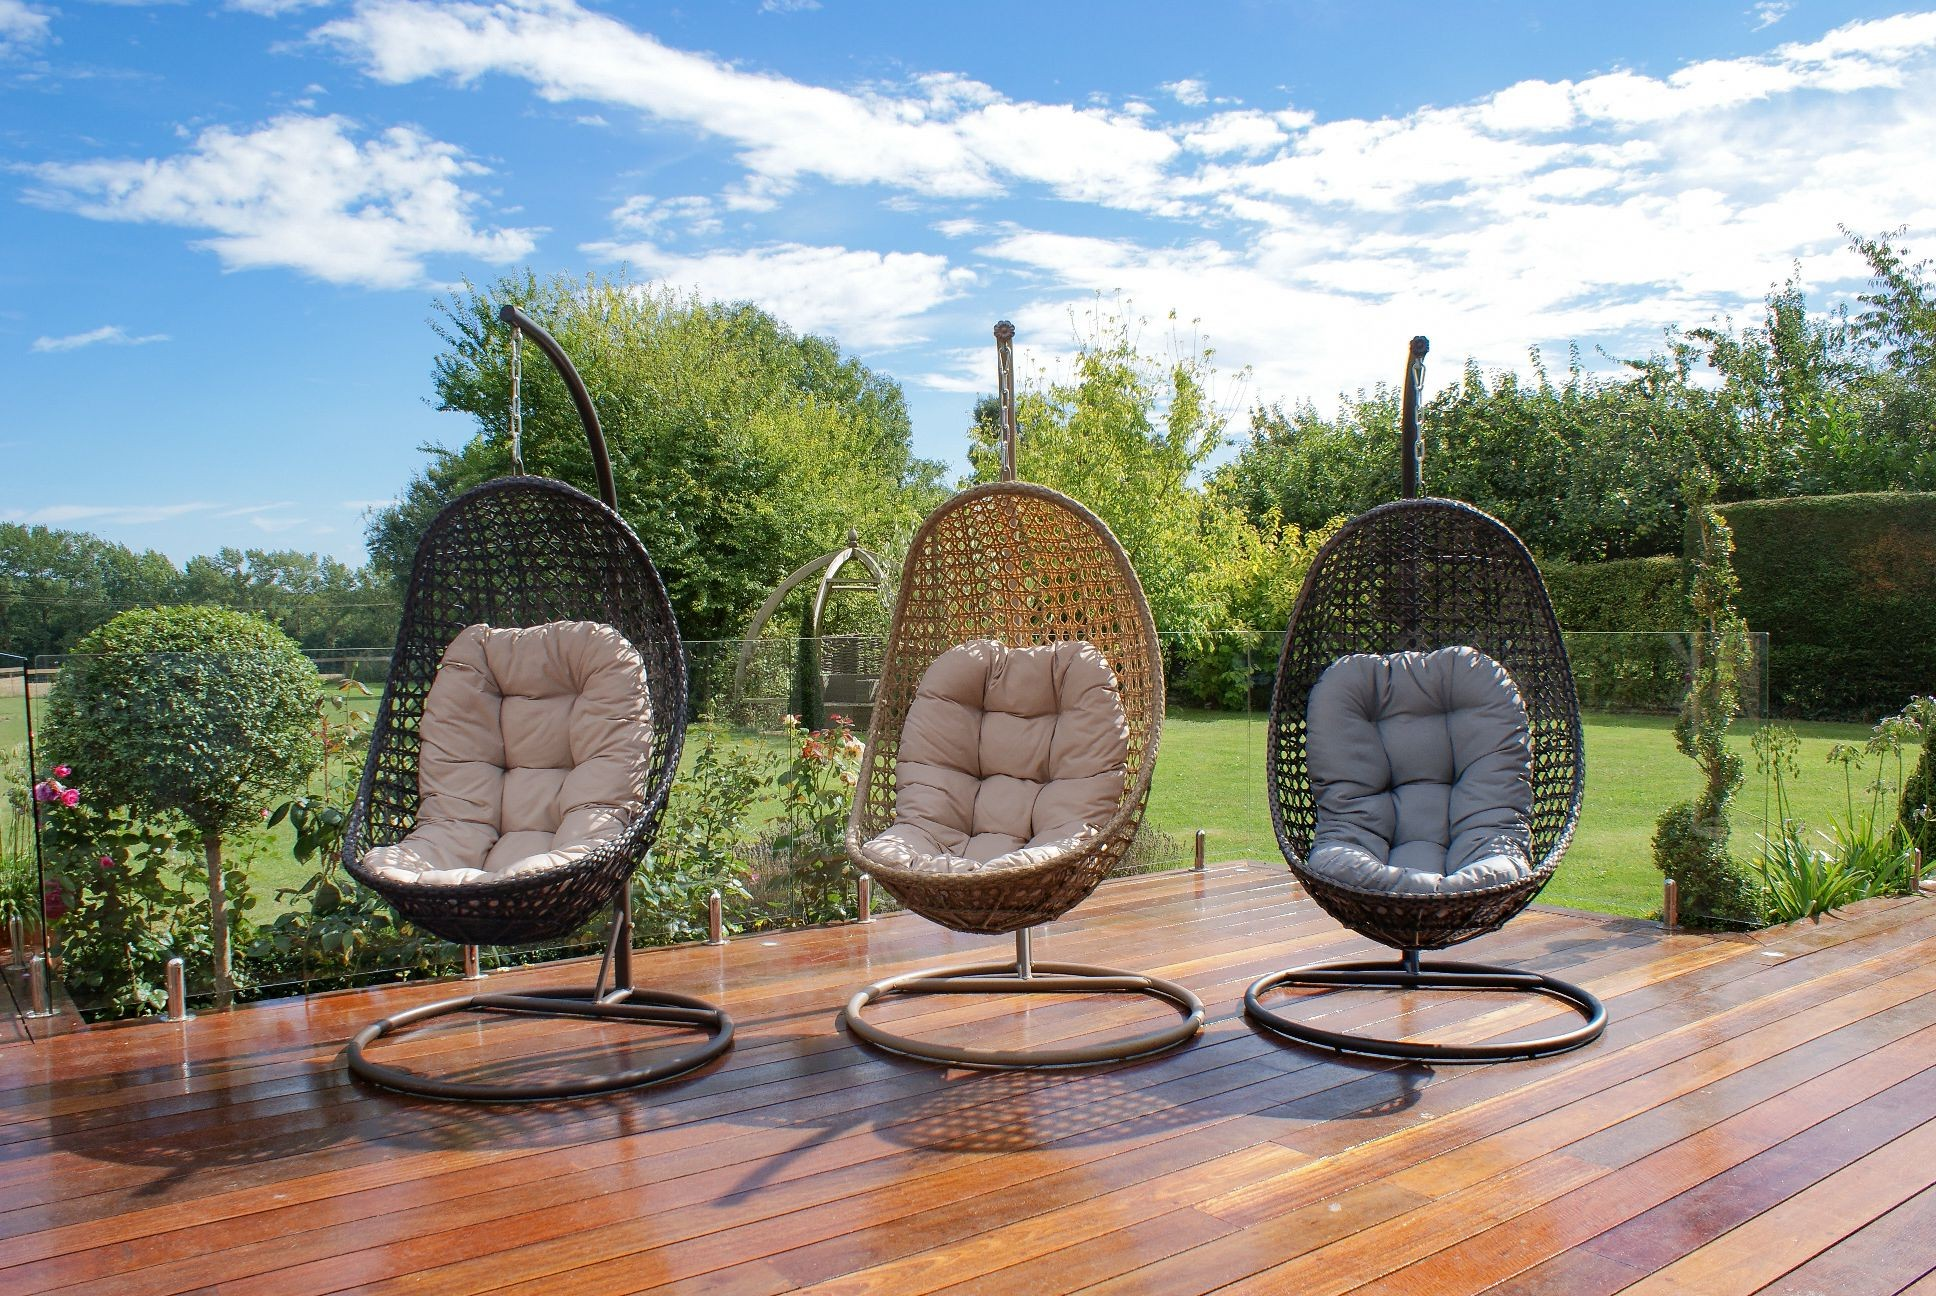 Malibu Hanging Chair – Compelling You To Surrender With Temptation